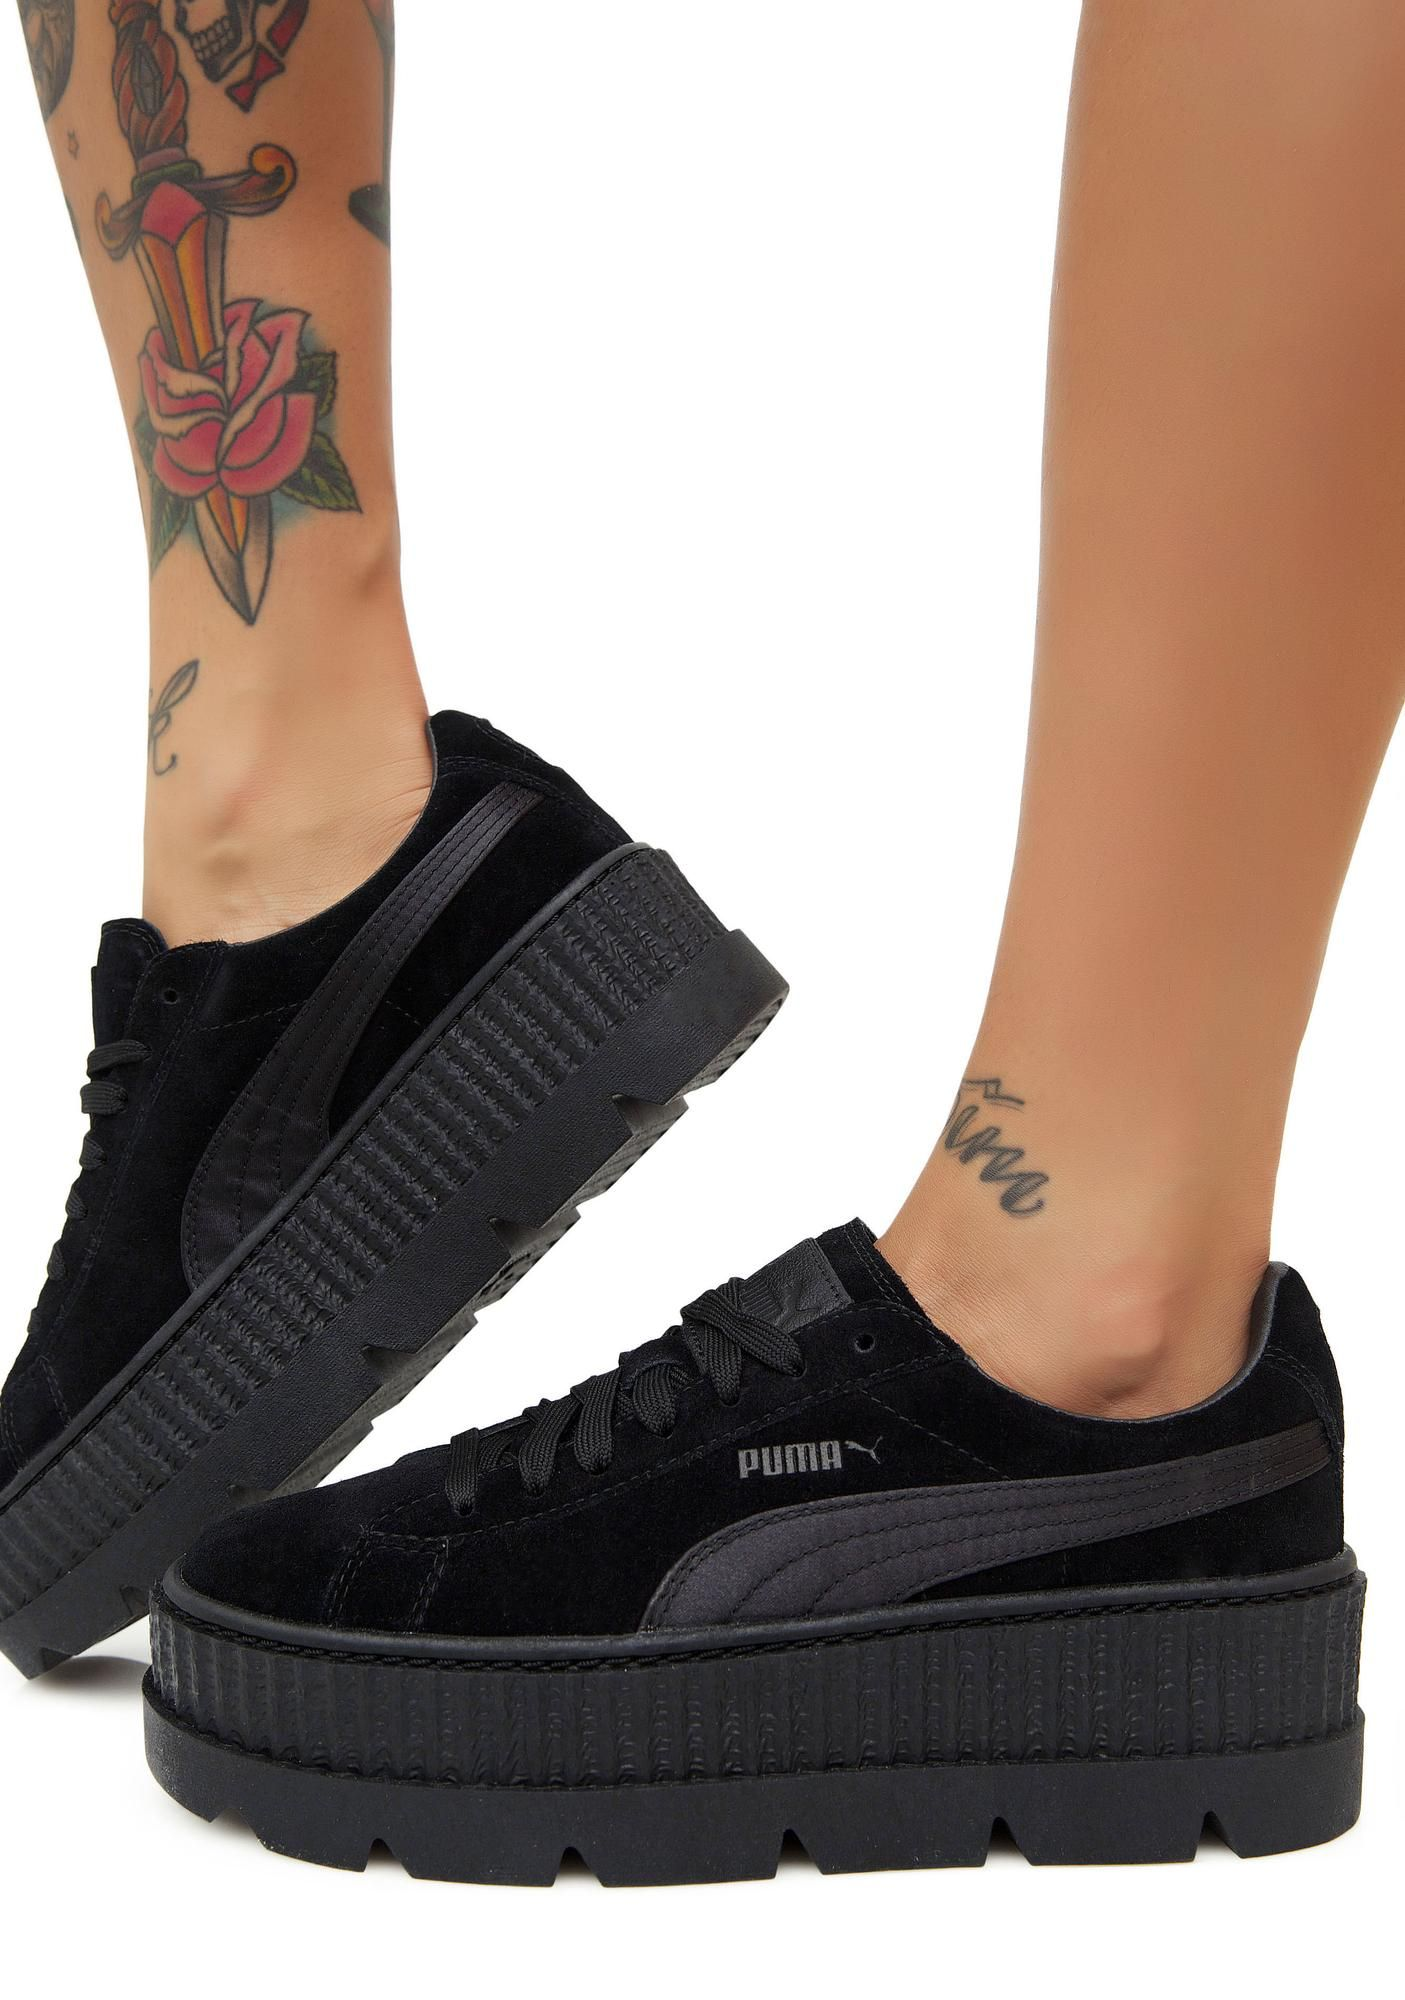 c50aa2dab0a PUMA Onyx FENTY PUMA by Rihanna Cleated Suede Creepers will take ya up a  notch. These sikk black platform creeper sneakers have supa thikk cleated  soles and ...